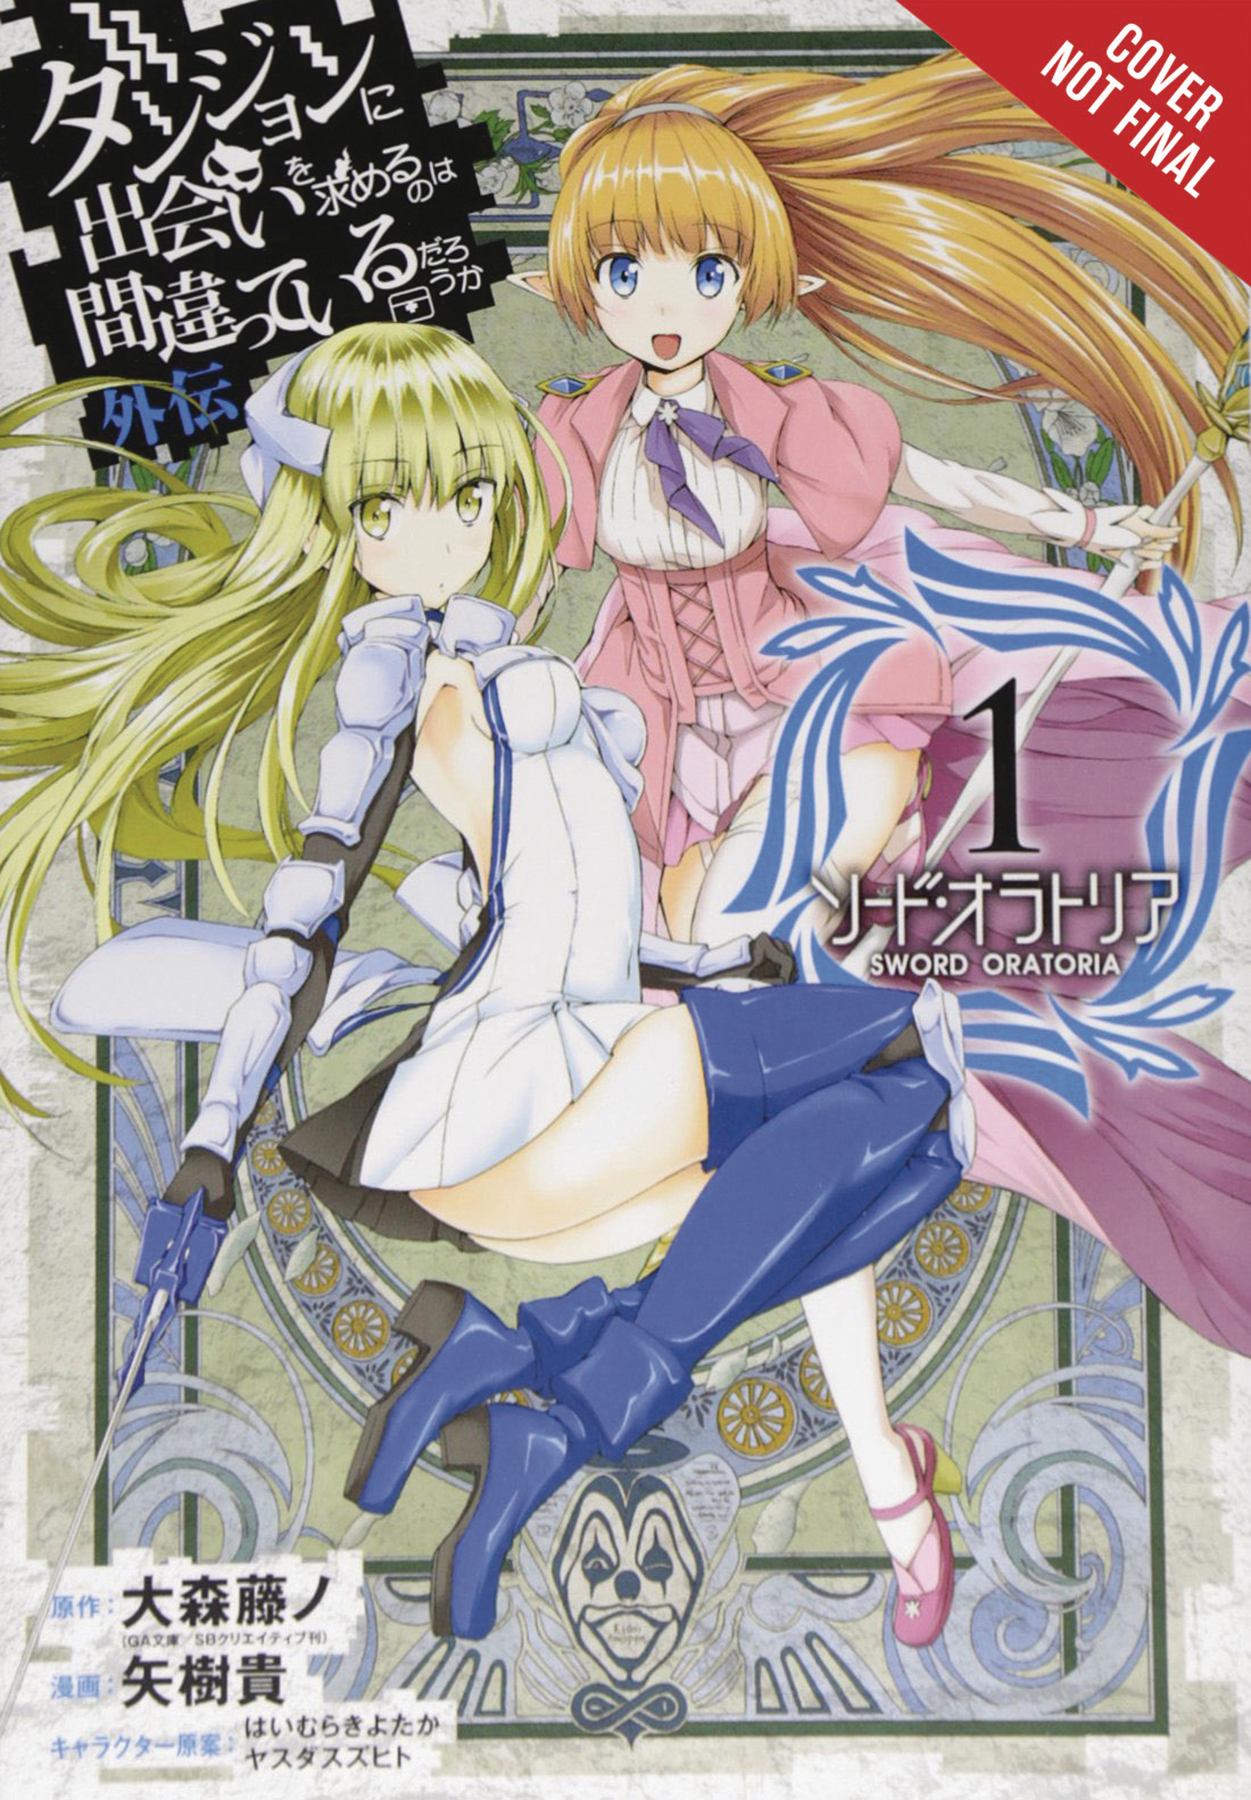 IS WRONG PICK UP GIRLS DUNGEON SWORD ORATORIA GN VOL 01